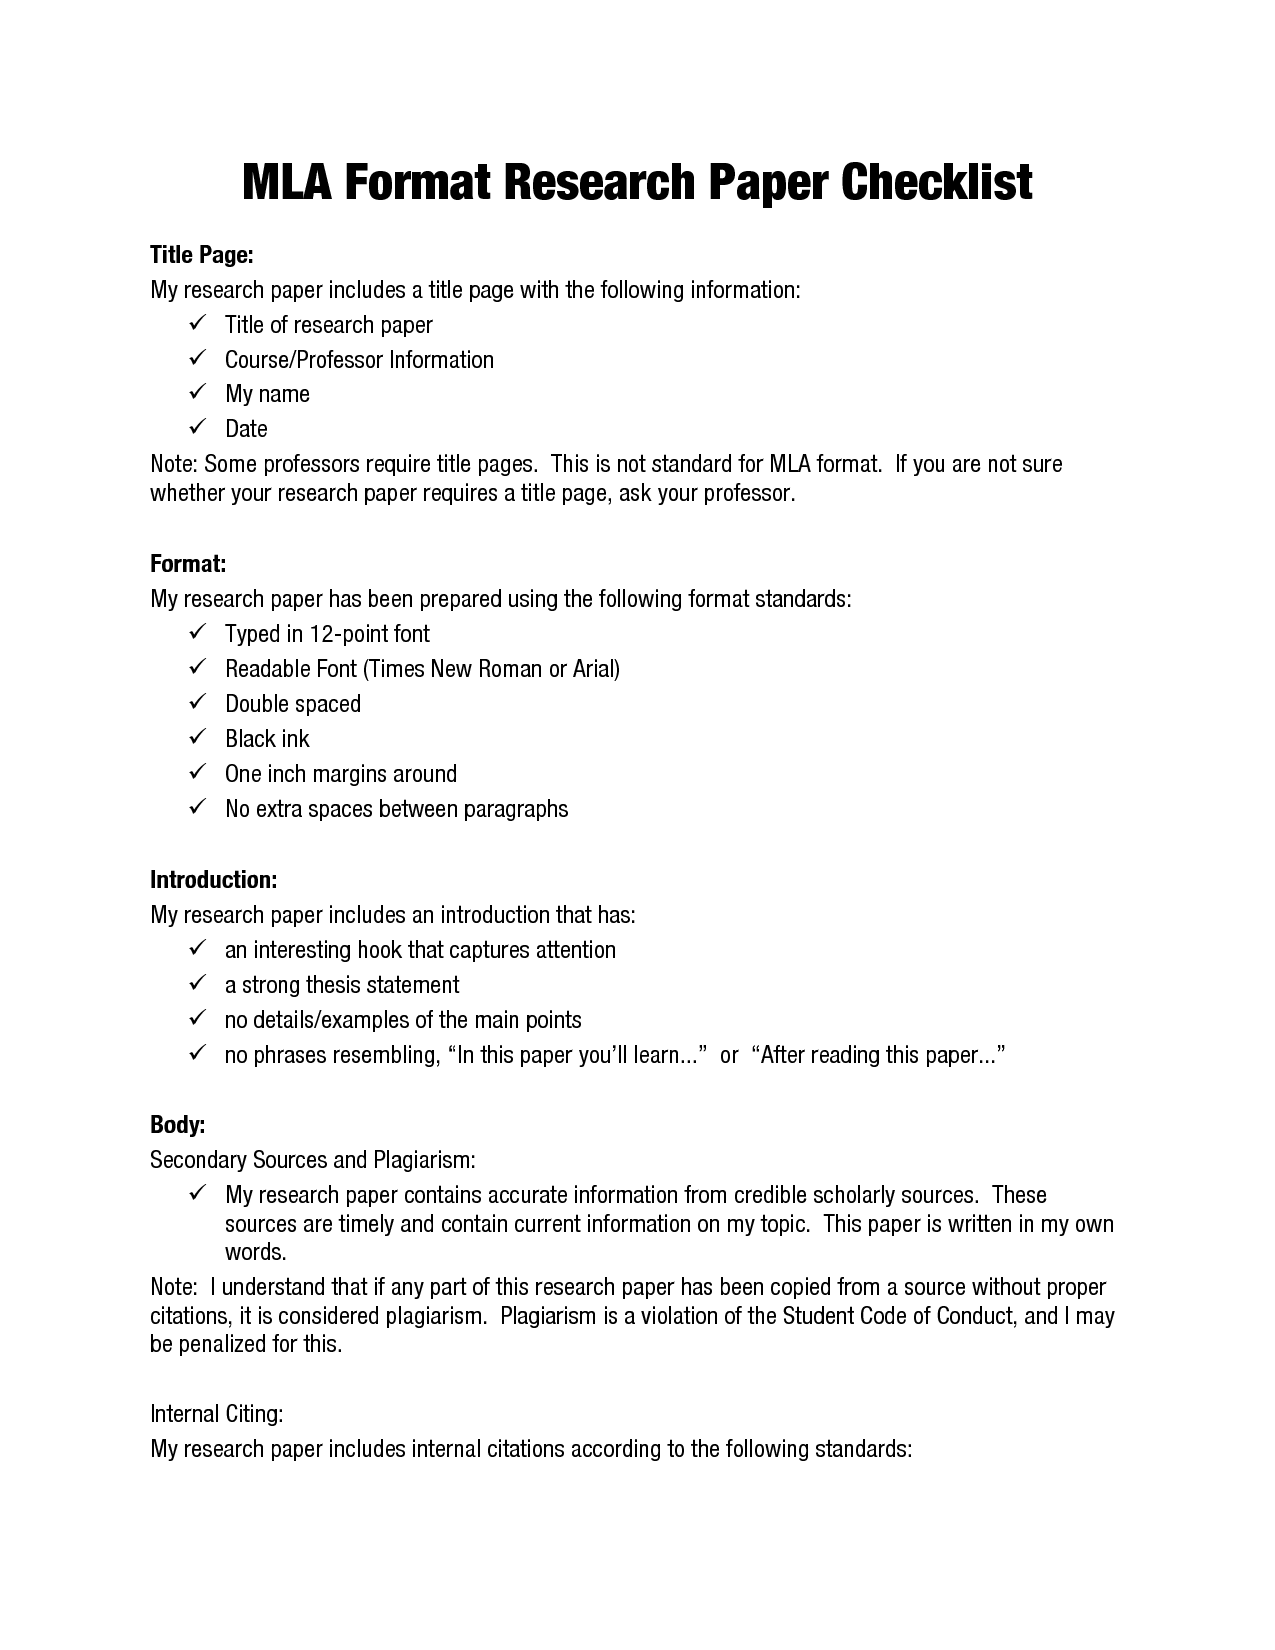 mla requirements research paper Discover the basic guidelines for the mla paper format, including information about margins, fonts, headers, page numbers and section headings.